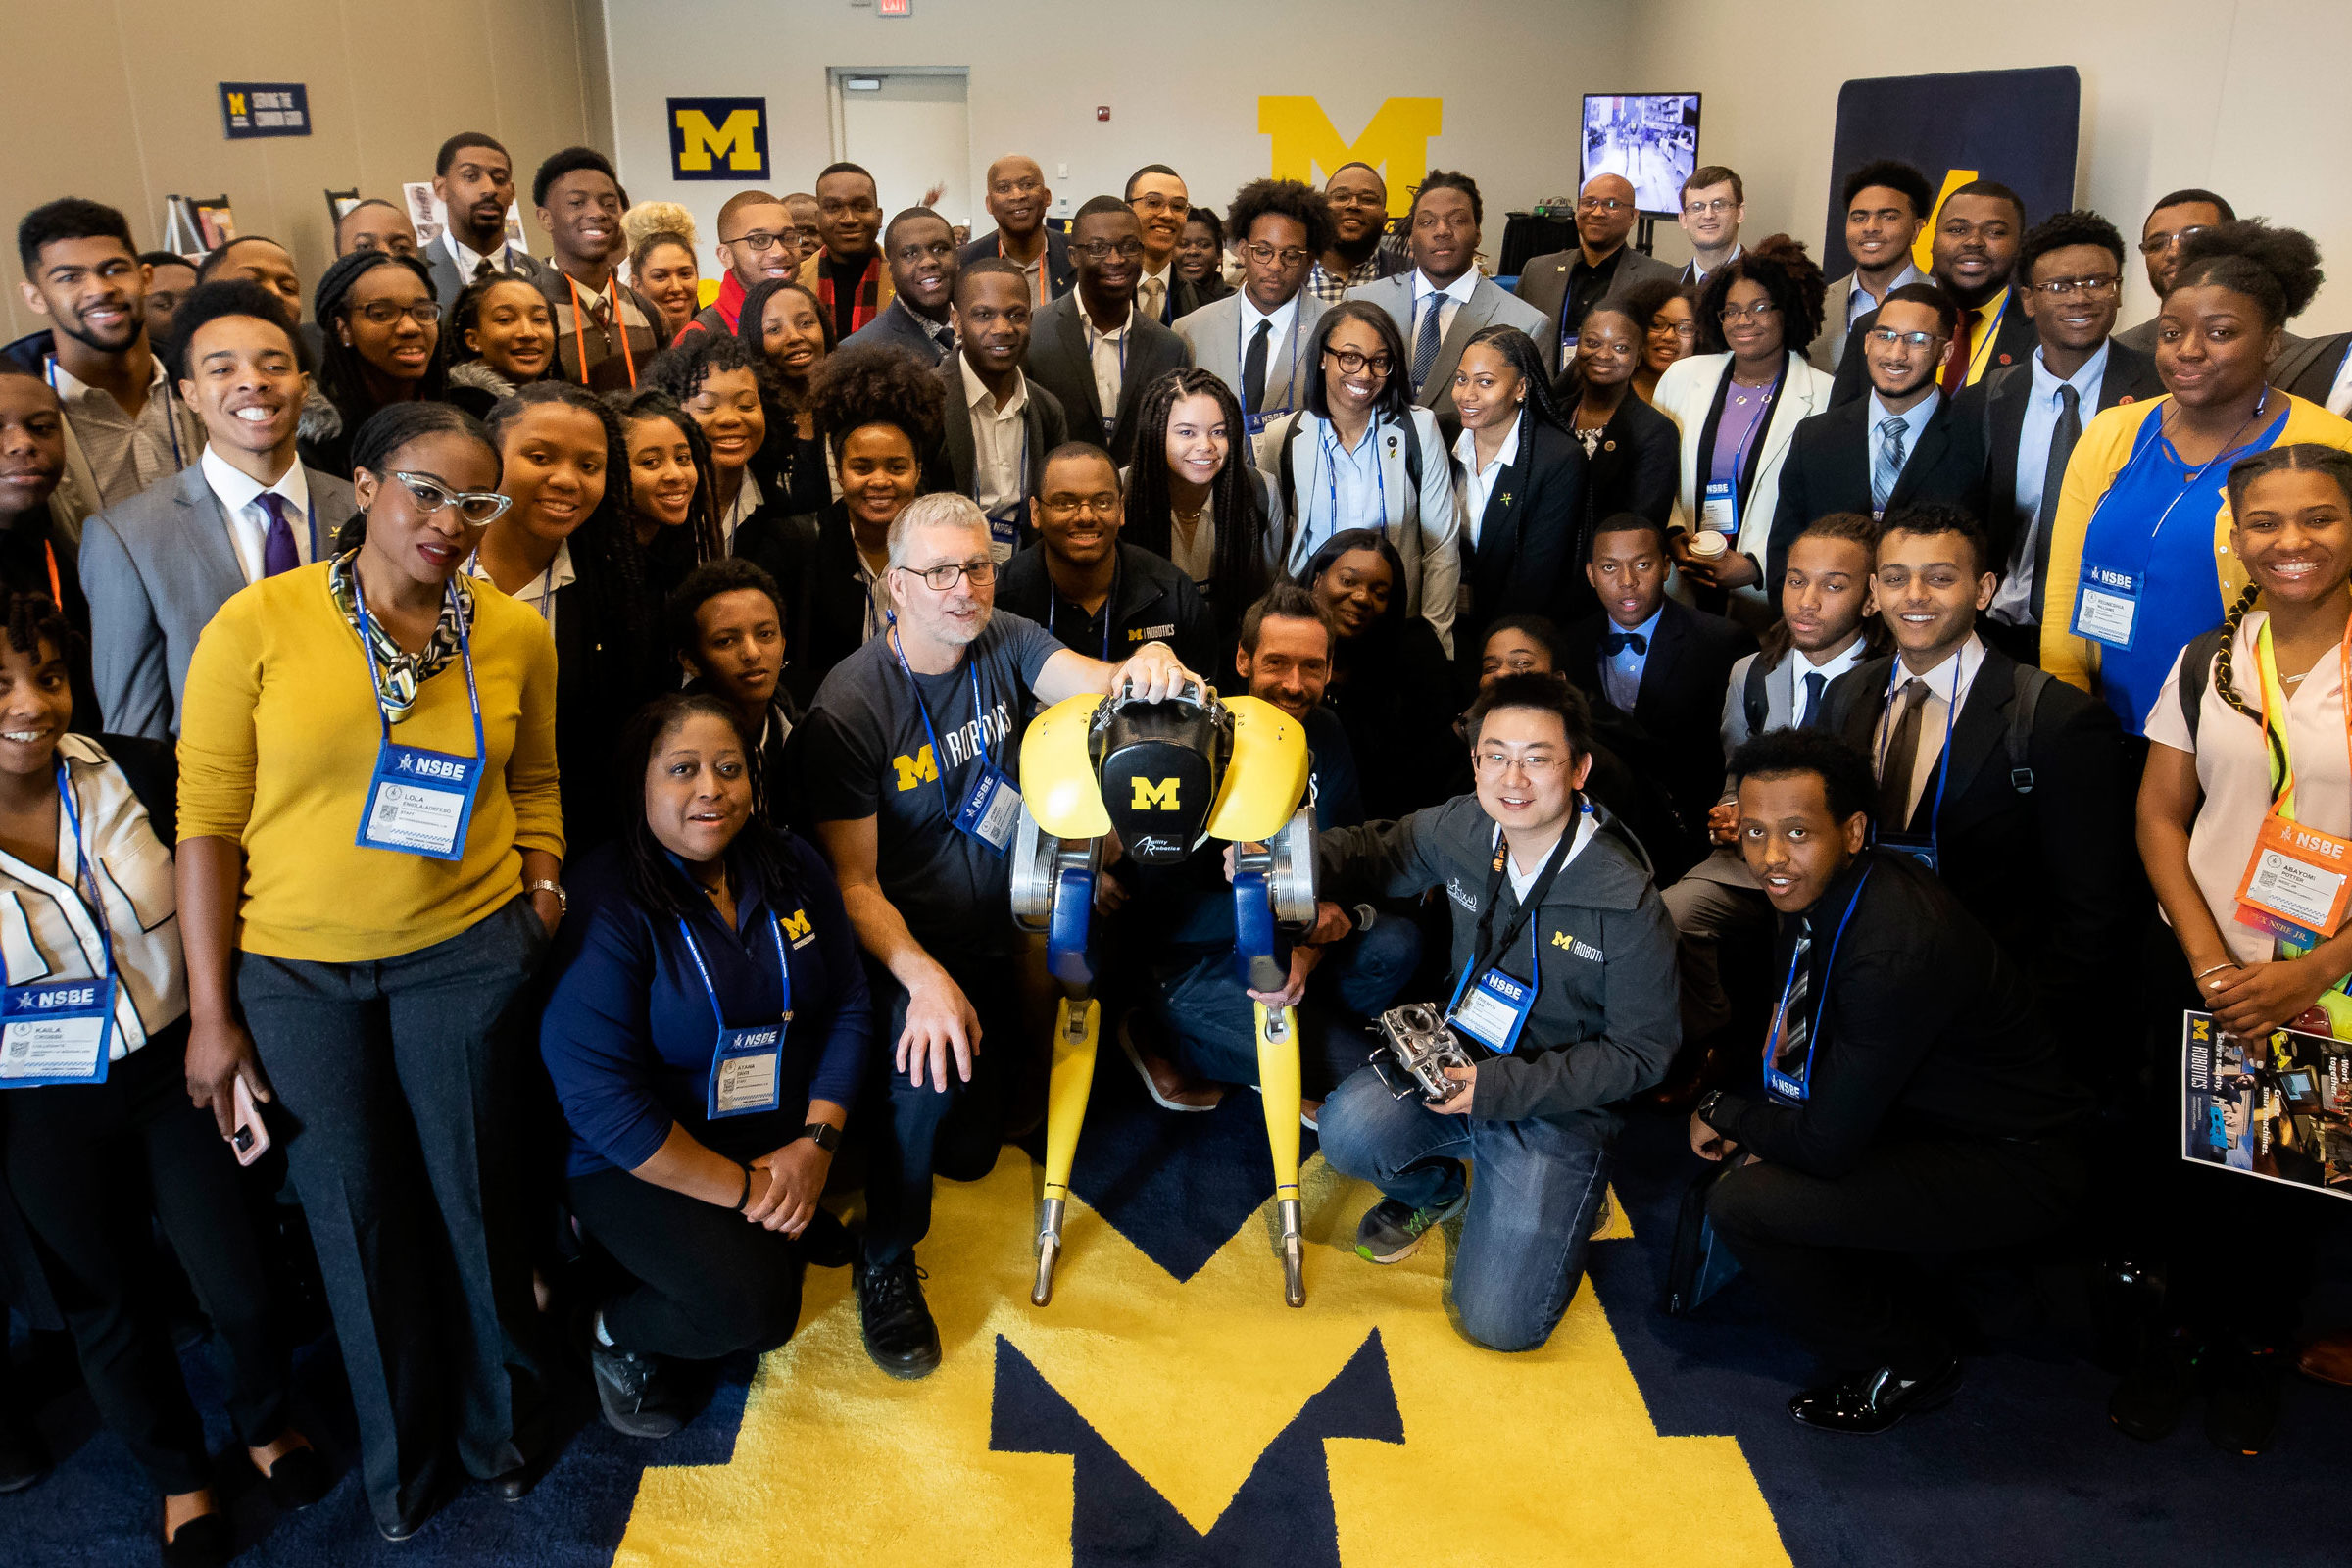 Group poses at The 45th NSBE Annual Convention